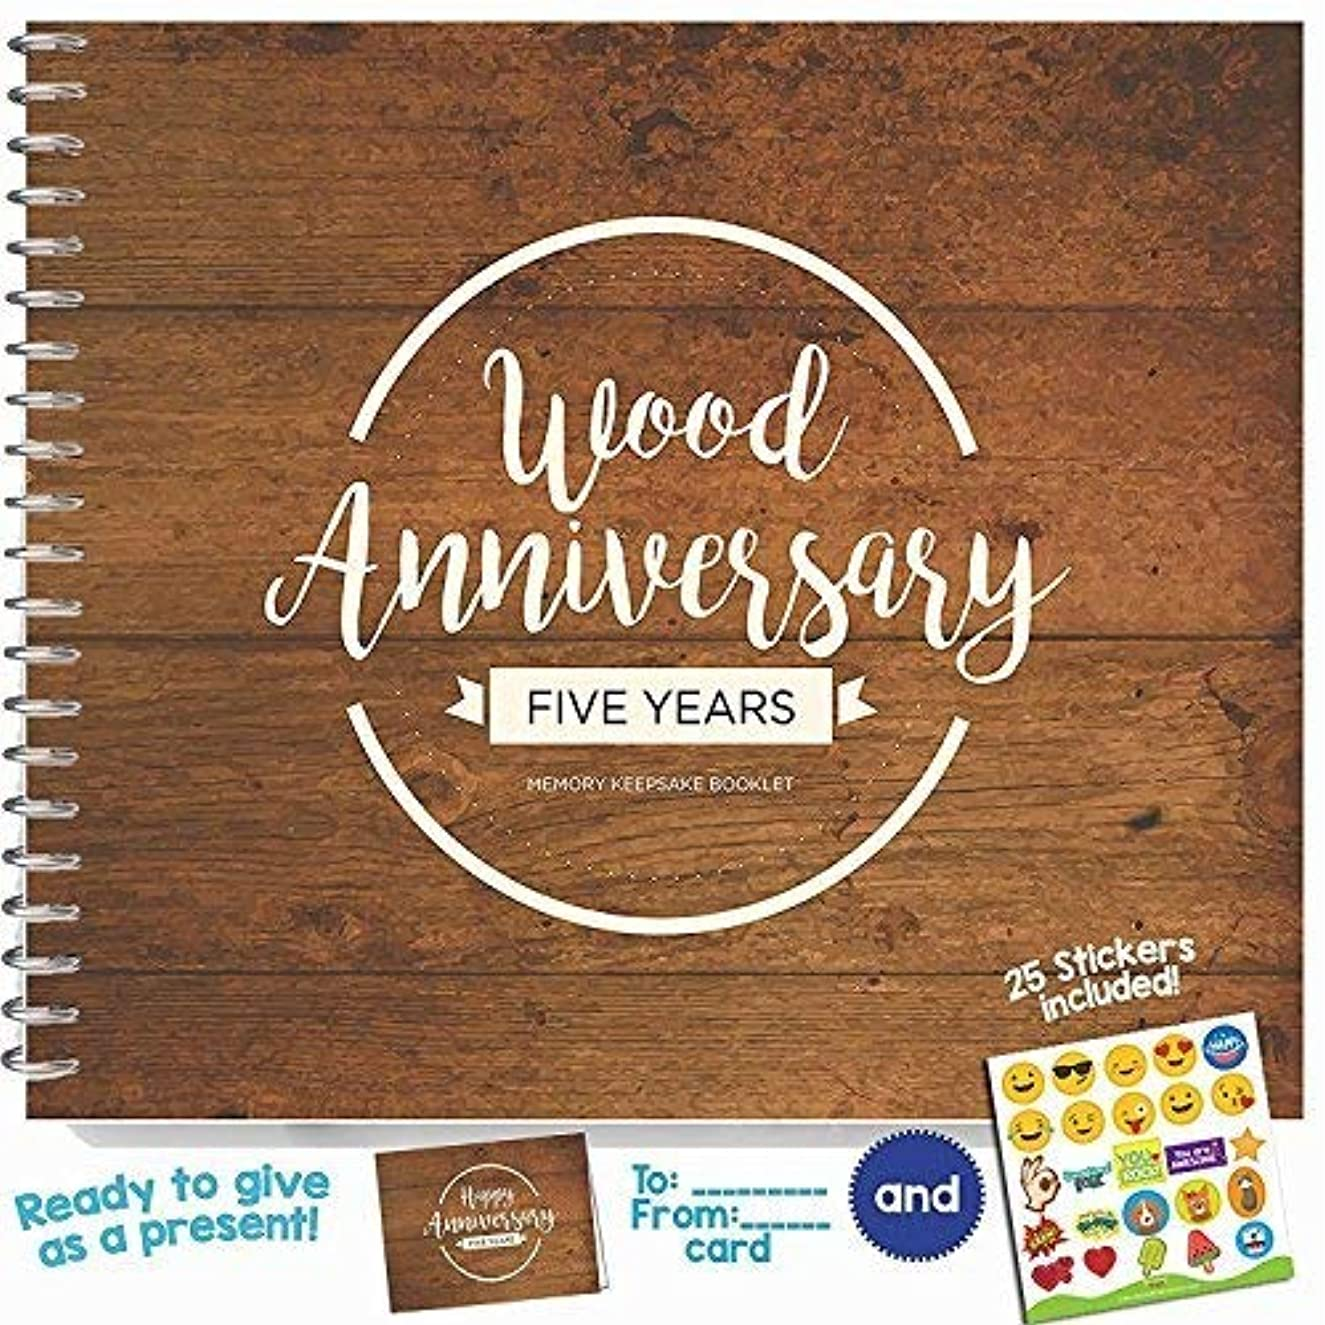 Unique 5th Wedding Anniversary Memory Book with Stickers and A Matching Card - 5-Second Memory Journal For Your Special Wood Anniversary - The Perfect Keepsake Booklet for Special Memories